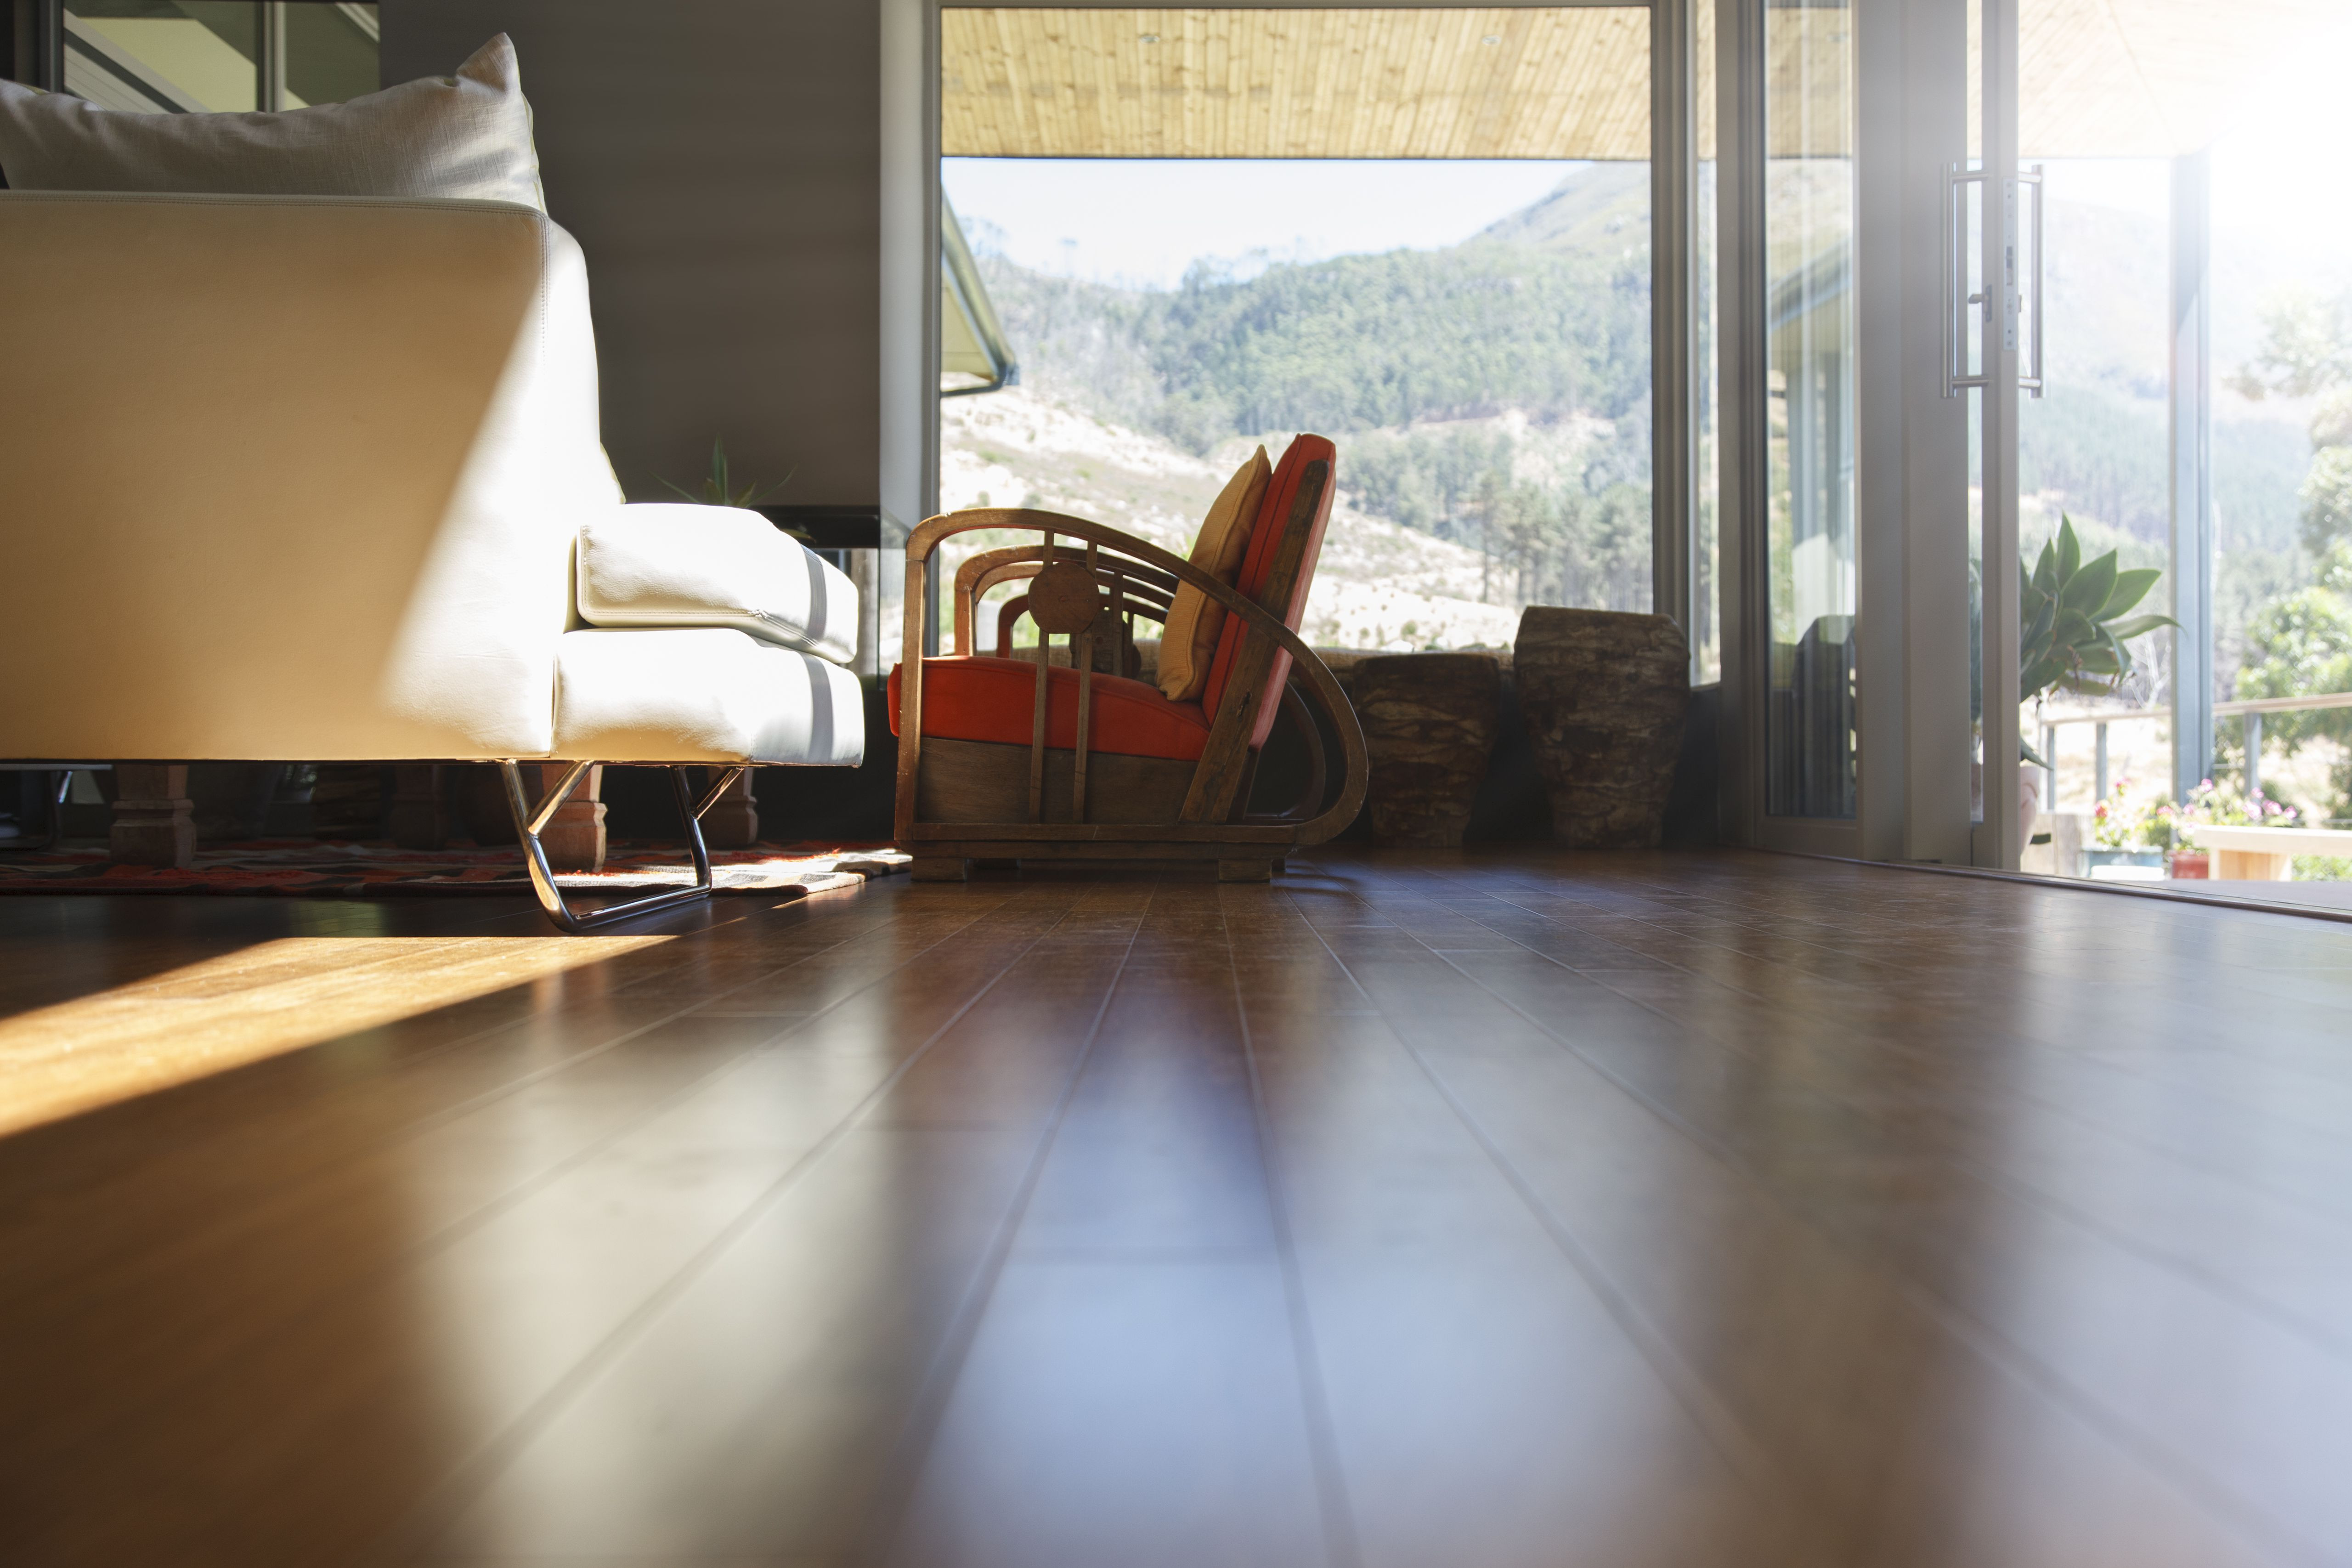 wide plank hardwood flooring problems of a vinyl plank flooring guide pertaining to living room interior hard wood floor and sofa 525439899 57e95e215f9b586c359d5ab1